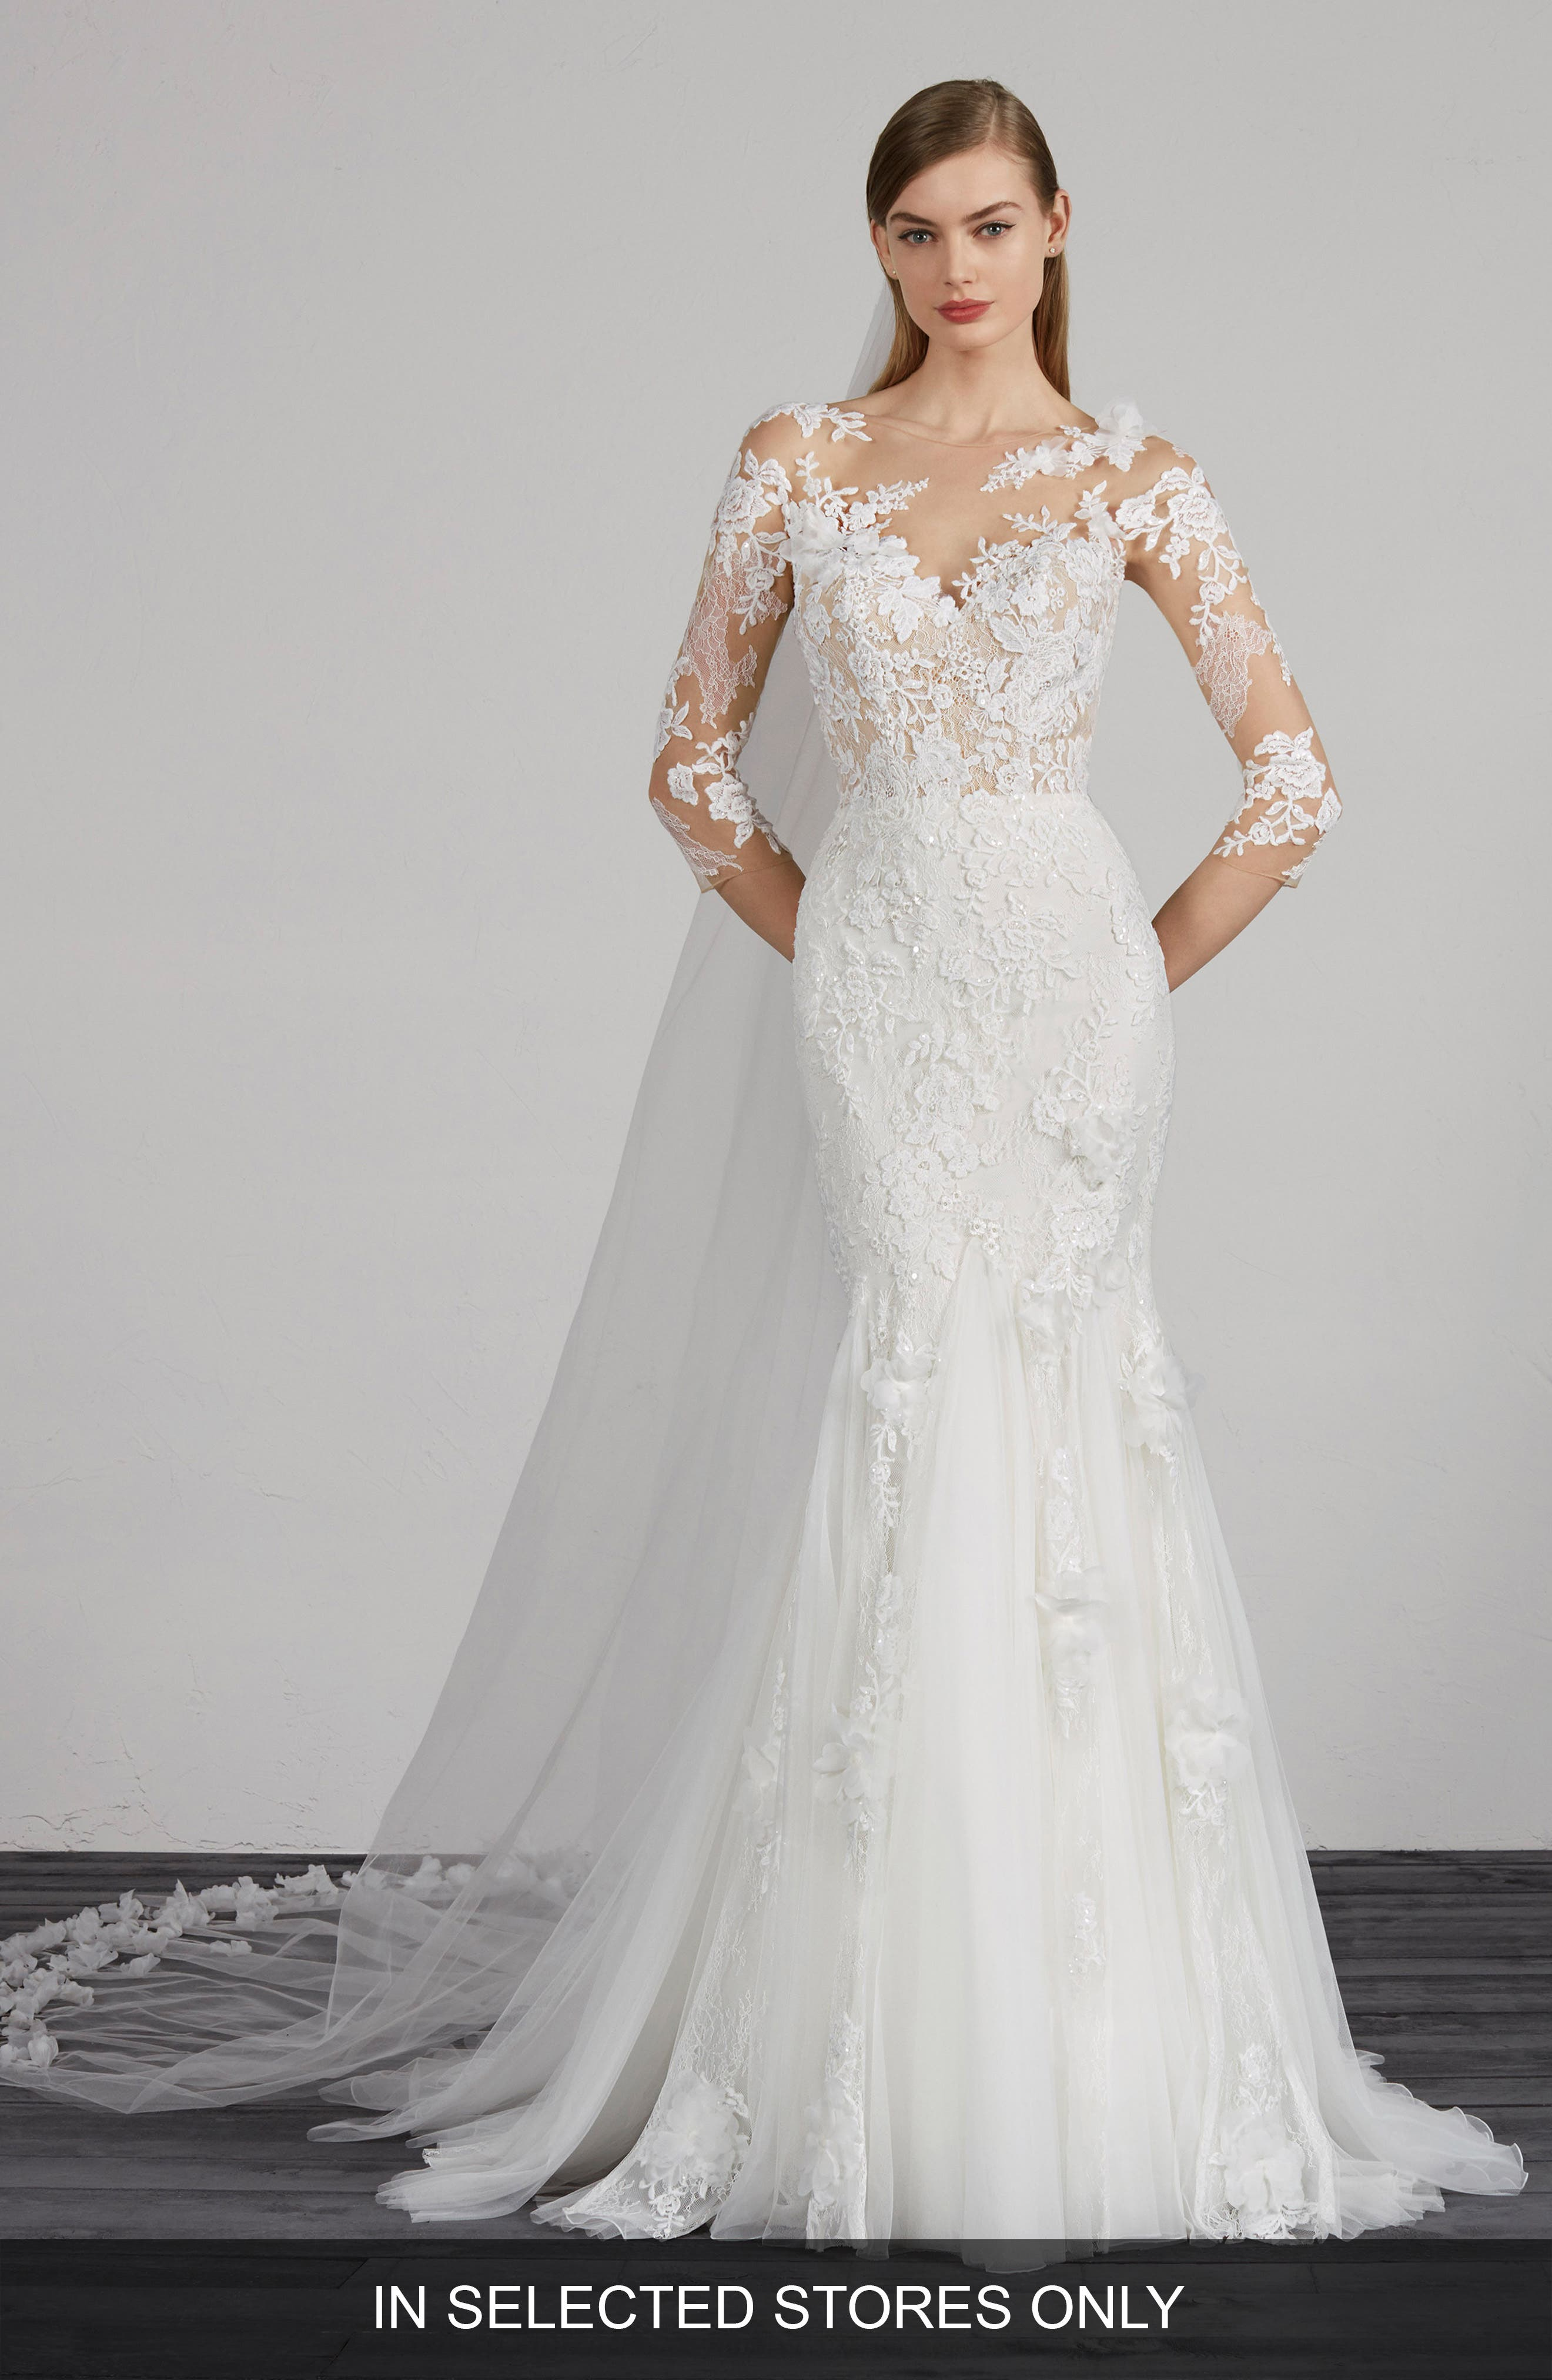 Maden Lace & Tulle Mermaid Gown,                             Main thumbnail 1, color,                             OFF WHITE/ CRST/ ND